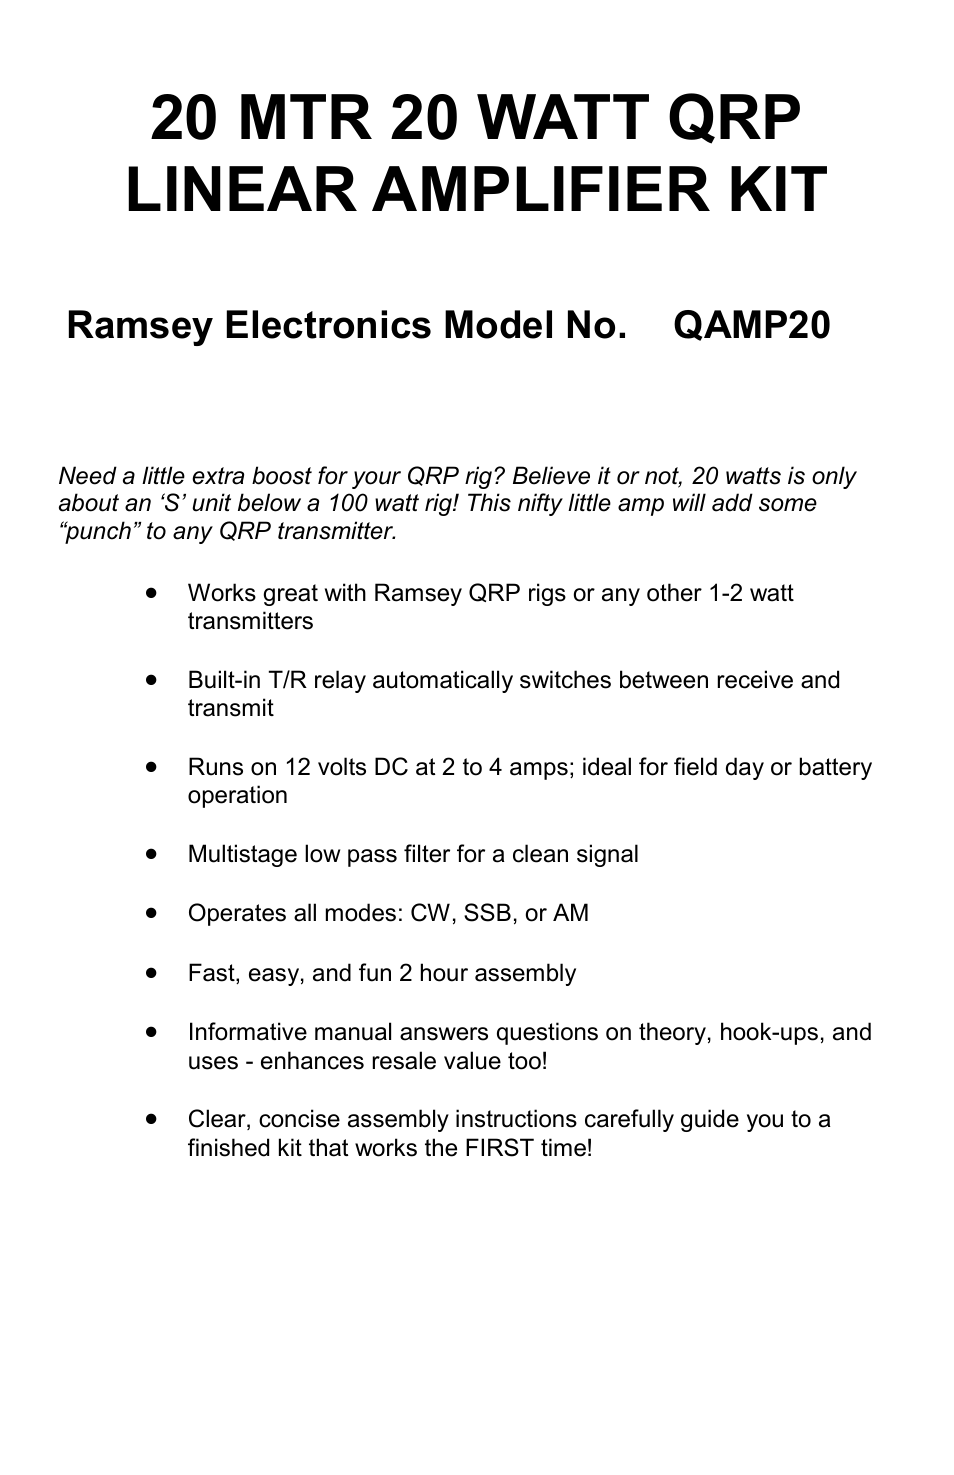 Ramsey Electronics QAMP20 User Manual | 20 pages